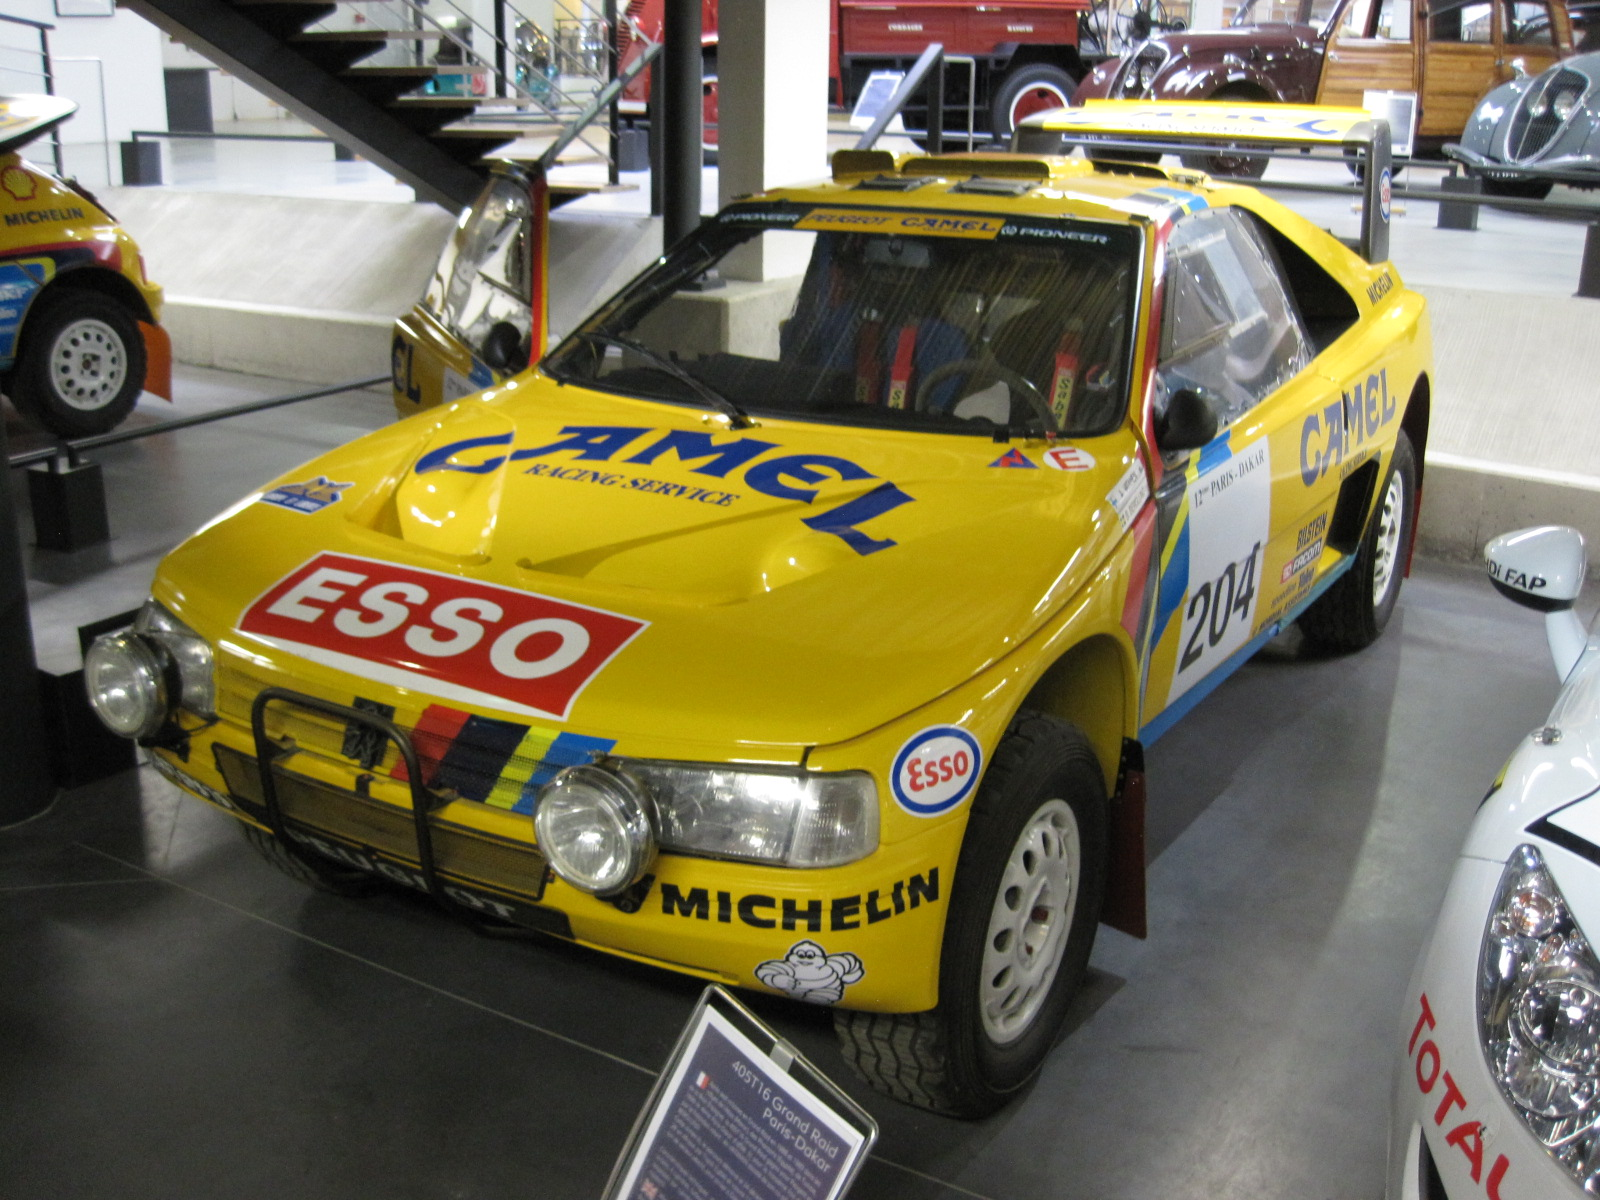 Peugeot 405 Turbo 16 Dakar